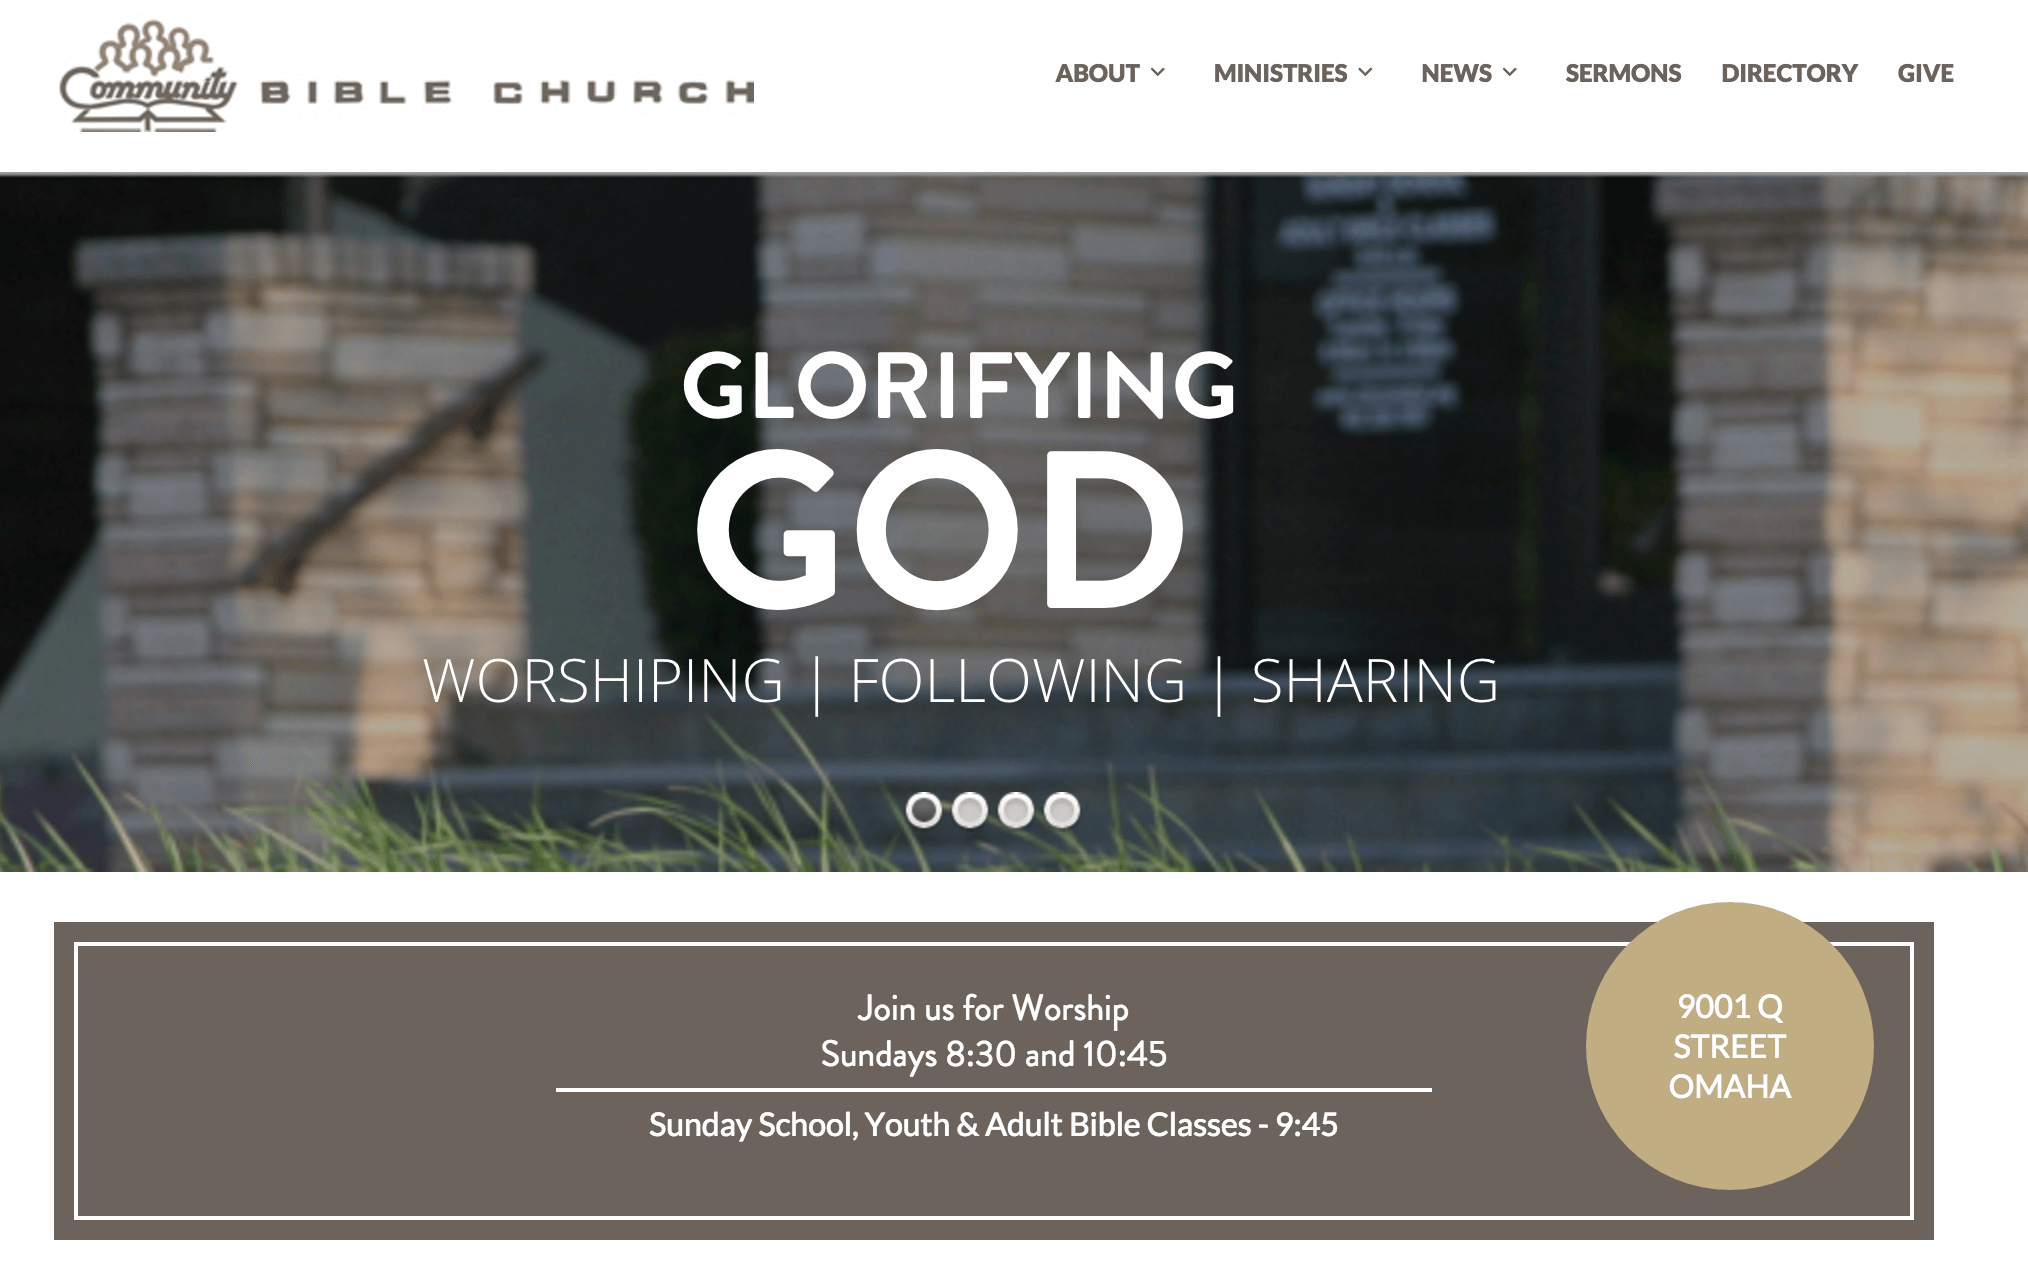 The Community Bible Church homepage